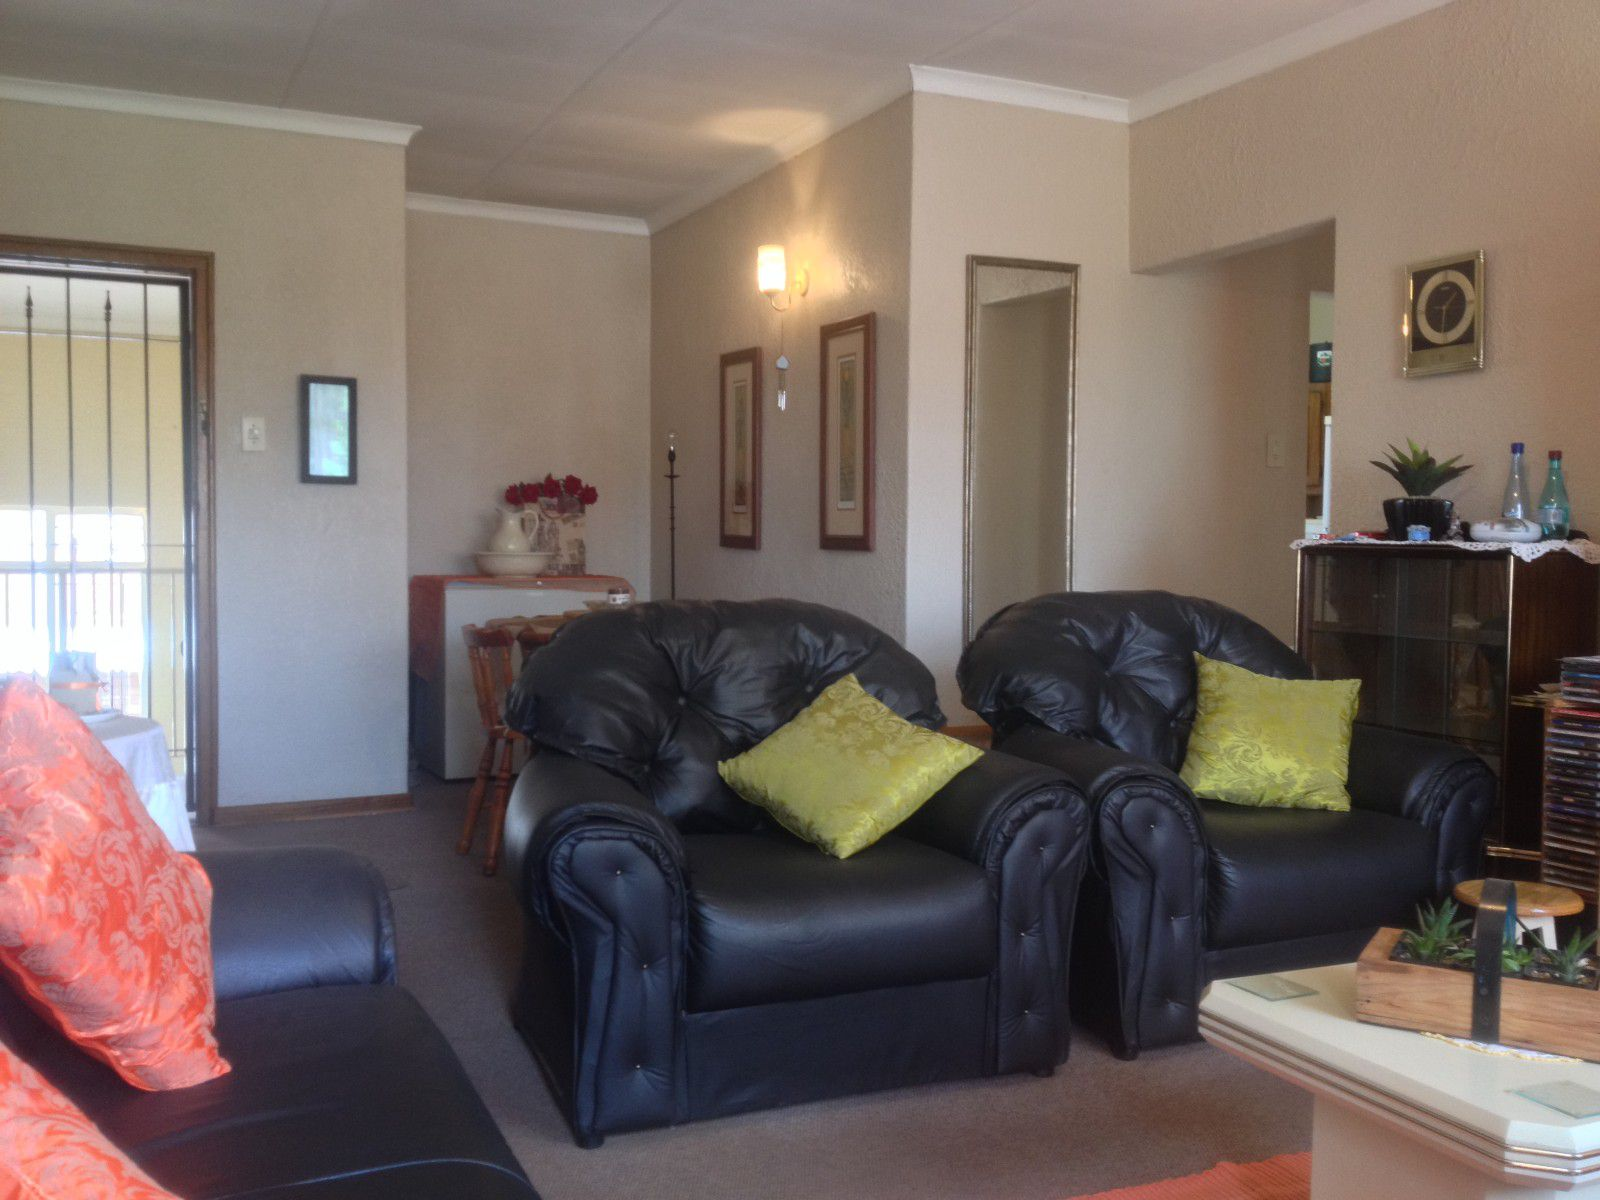 Potchefstroom Central property for sale. Ref No: 13411530. Picture no 8